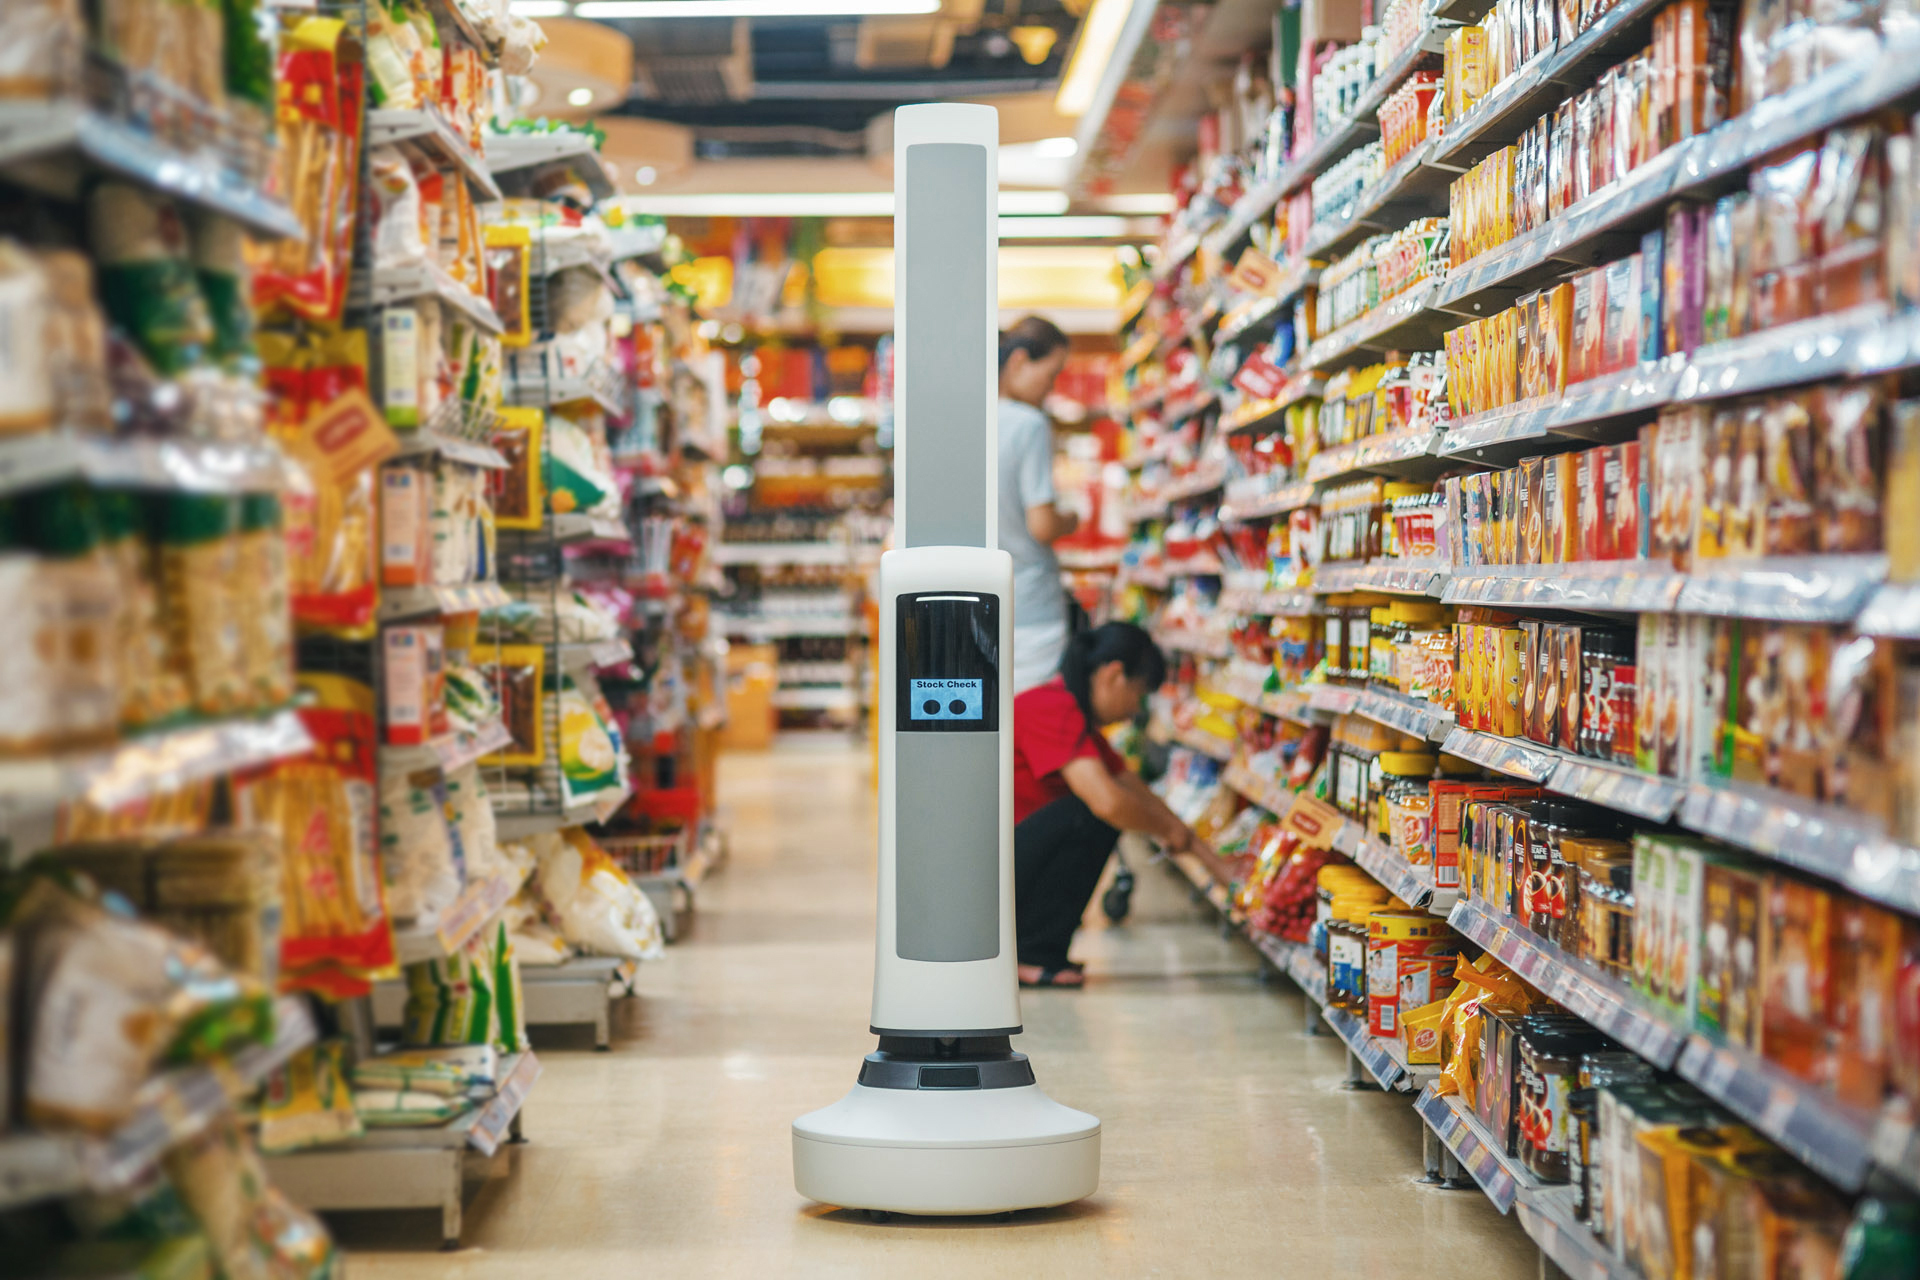 Schnucks grocery stores give Tally the robot some work to do checking the shelves